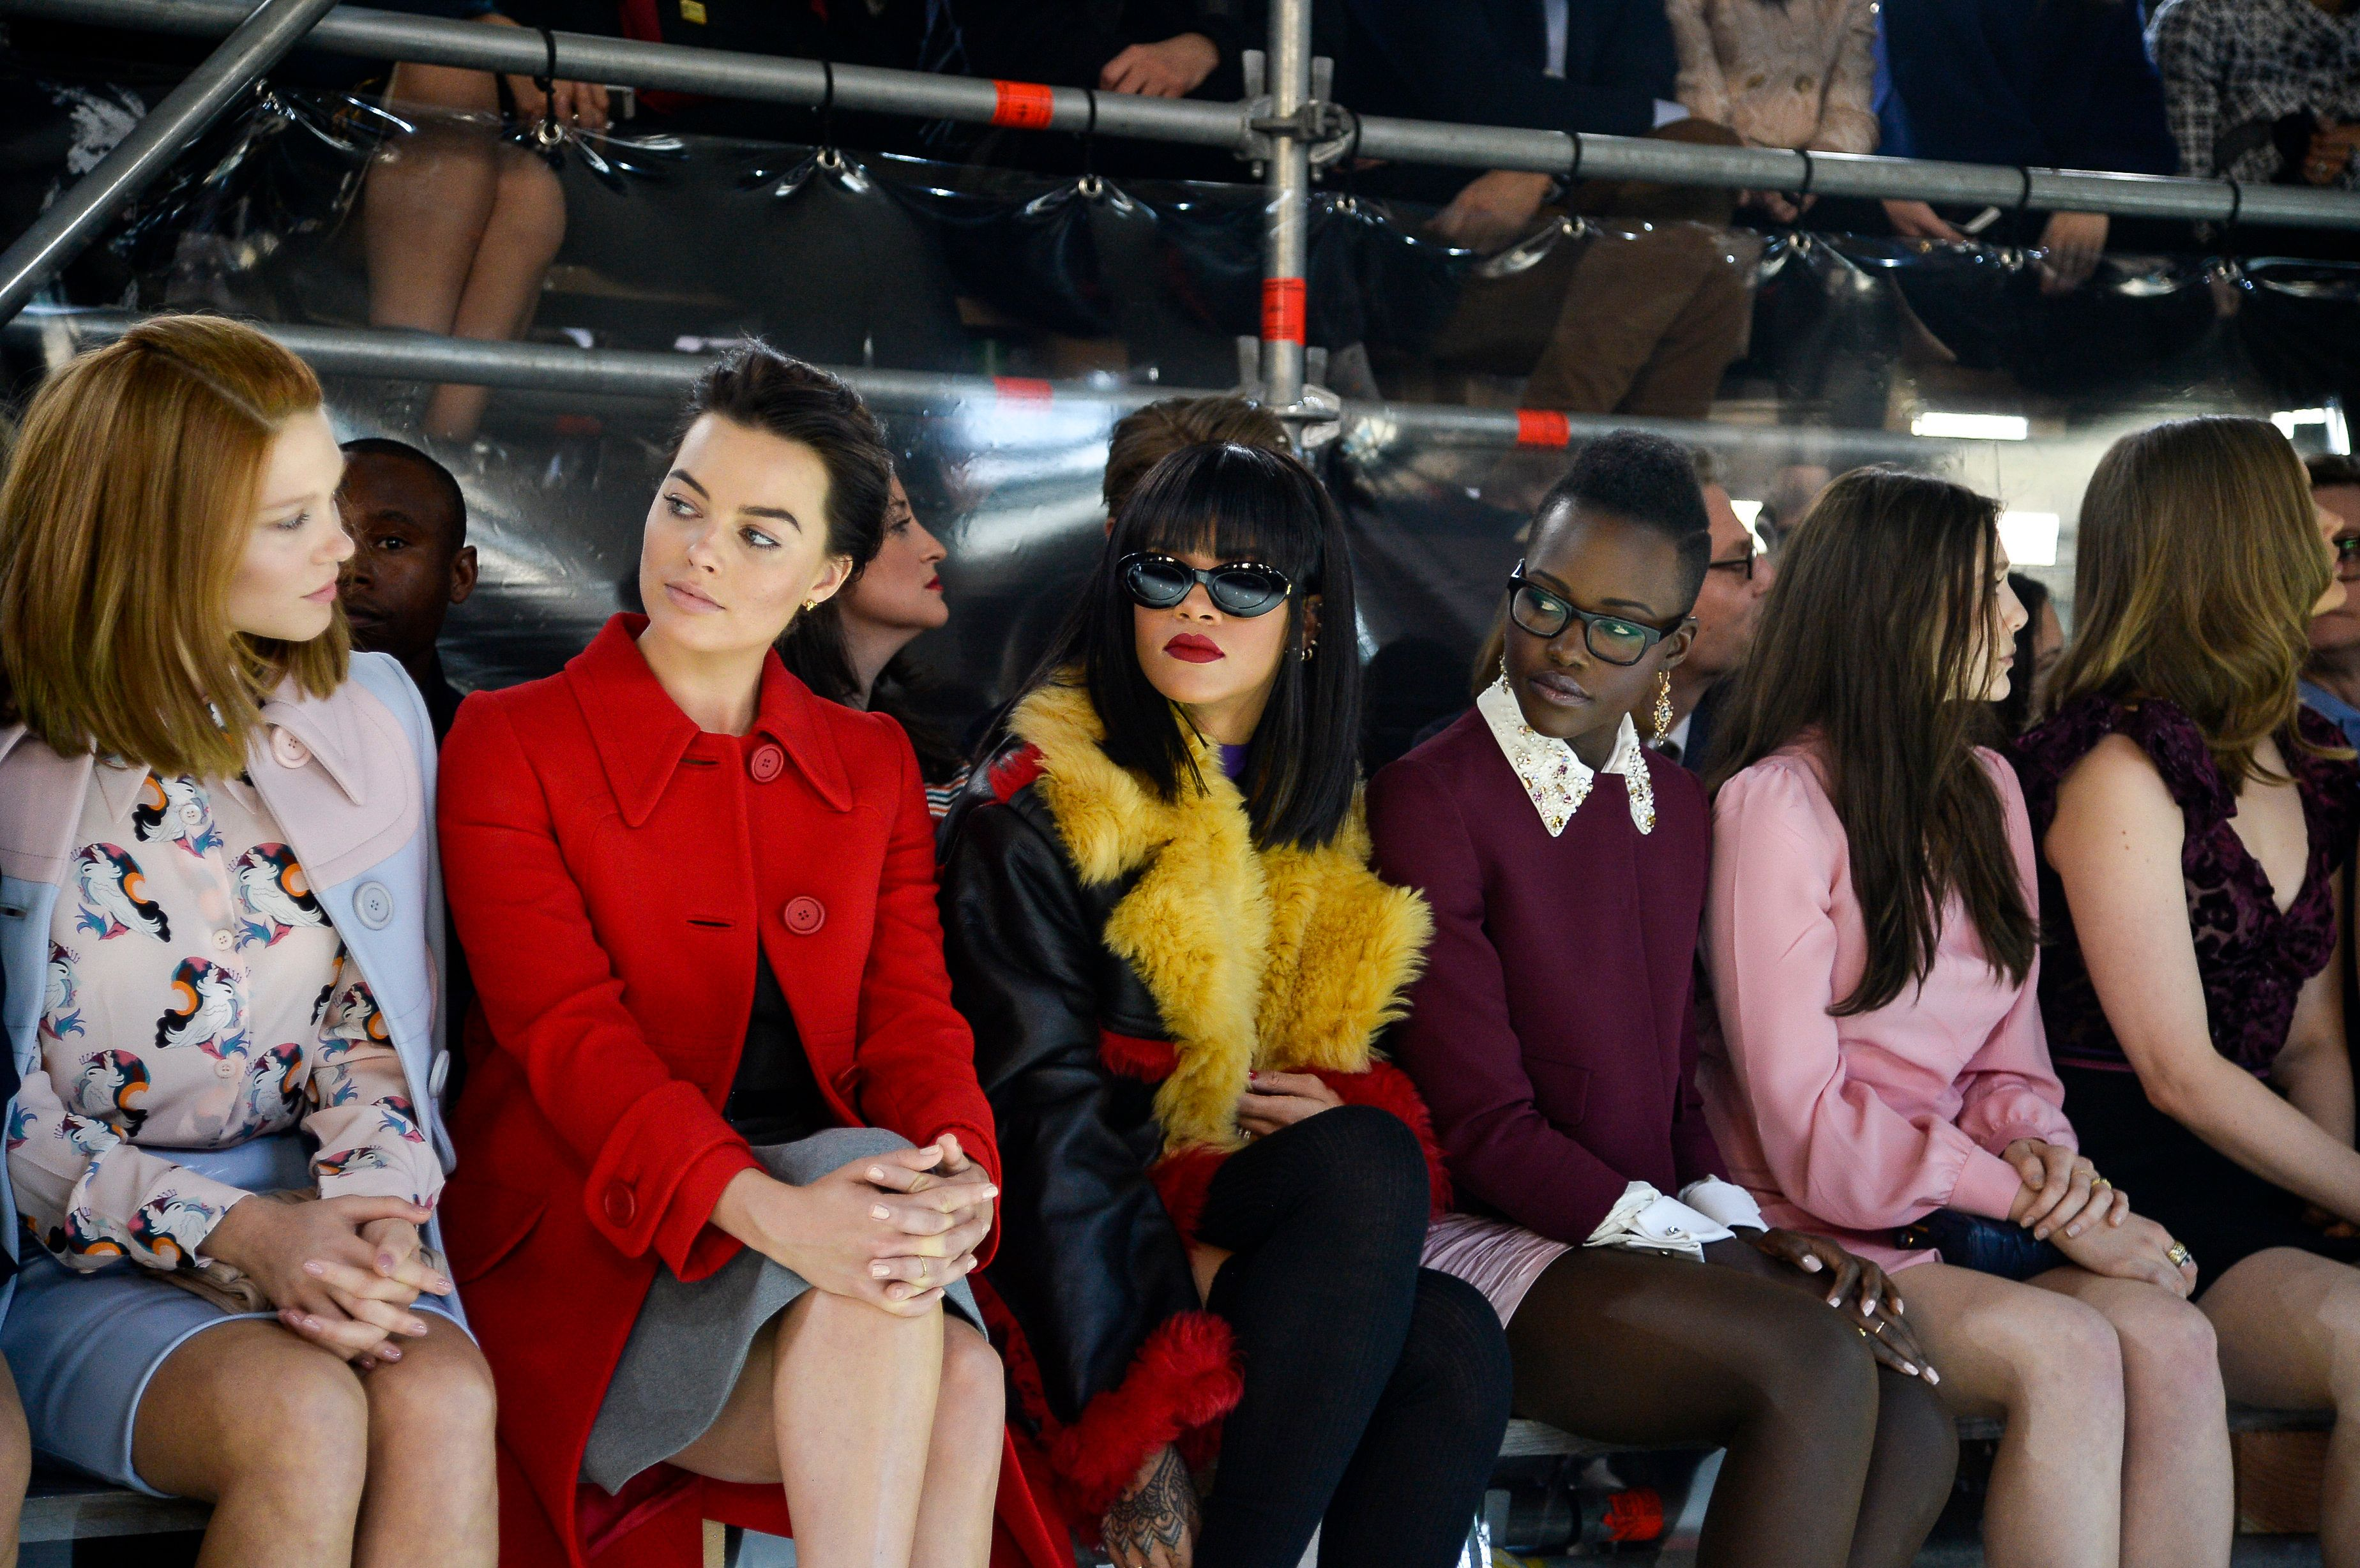 PARIS, FRANCE - MARCH 05:  (L-R) Actress Lea Seydoux, Margot Robbie, singer Rihanna, actresses Lupita Nyong'o and Elizabeth Olsen attend the Miu Miu show as part of the Paris Fashion Week Womenswear Fall/Winter 2014-2015 on March 5, 2014 in Paris, France.  (Photo by Pascal Le Segretain/Getty Images)